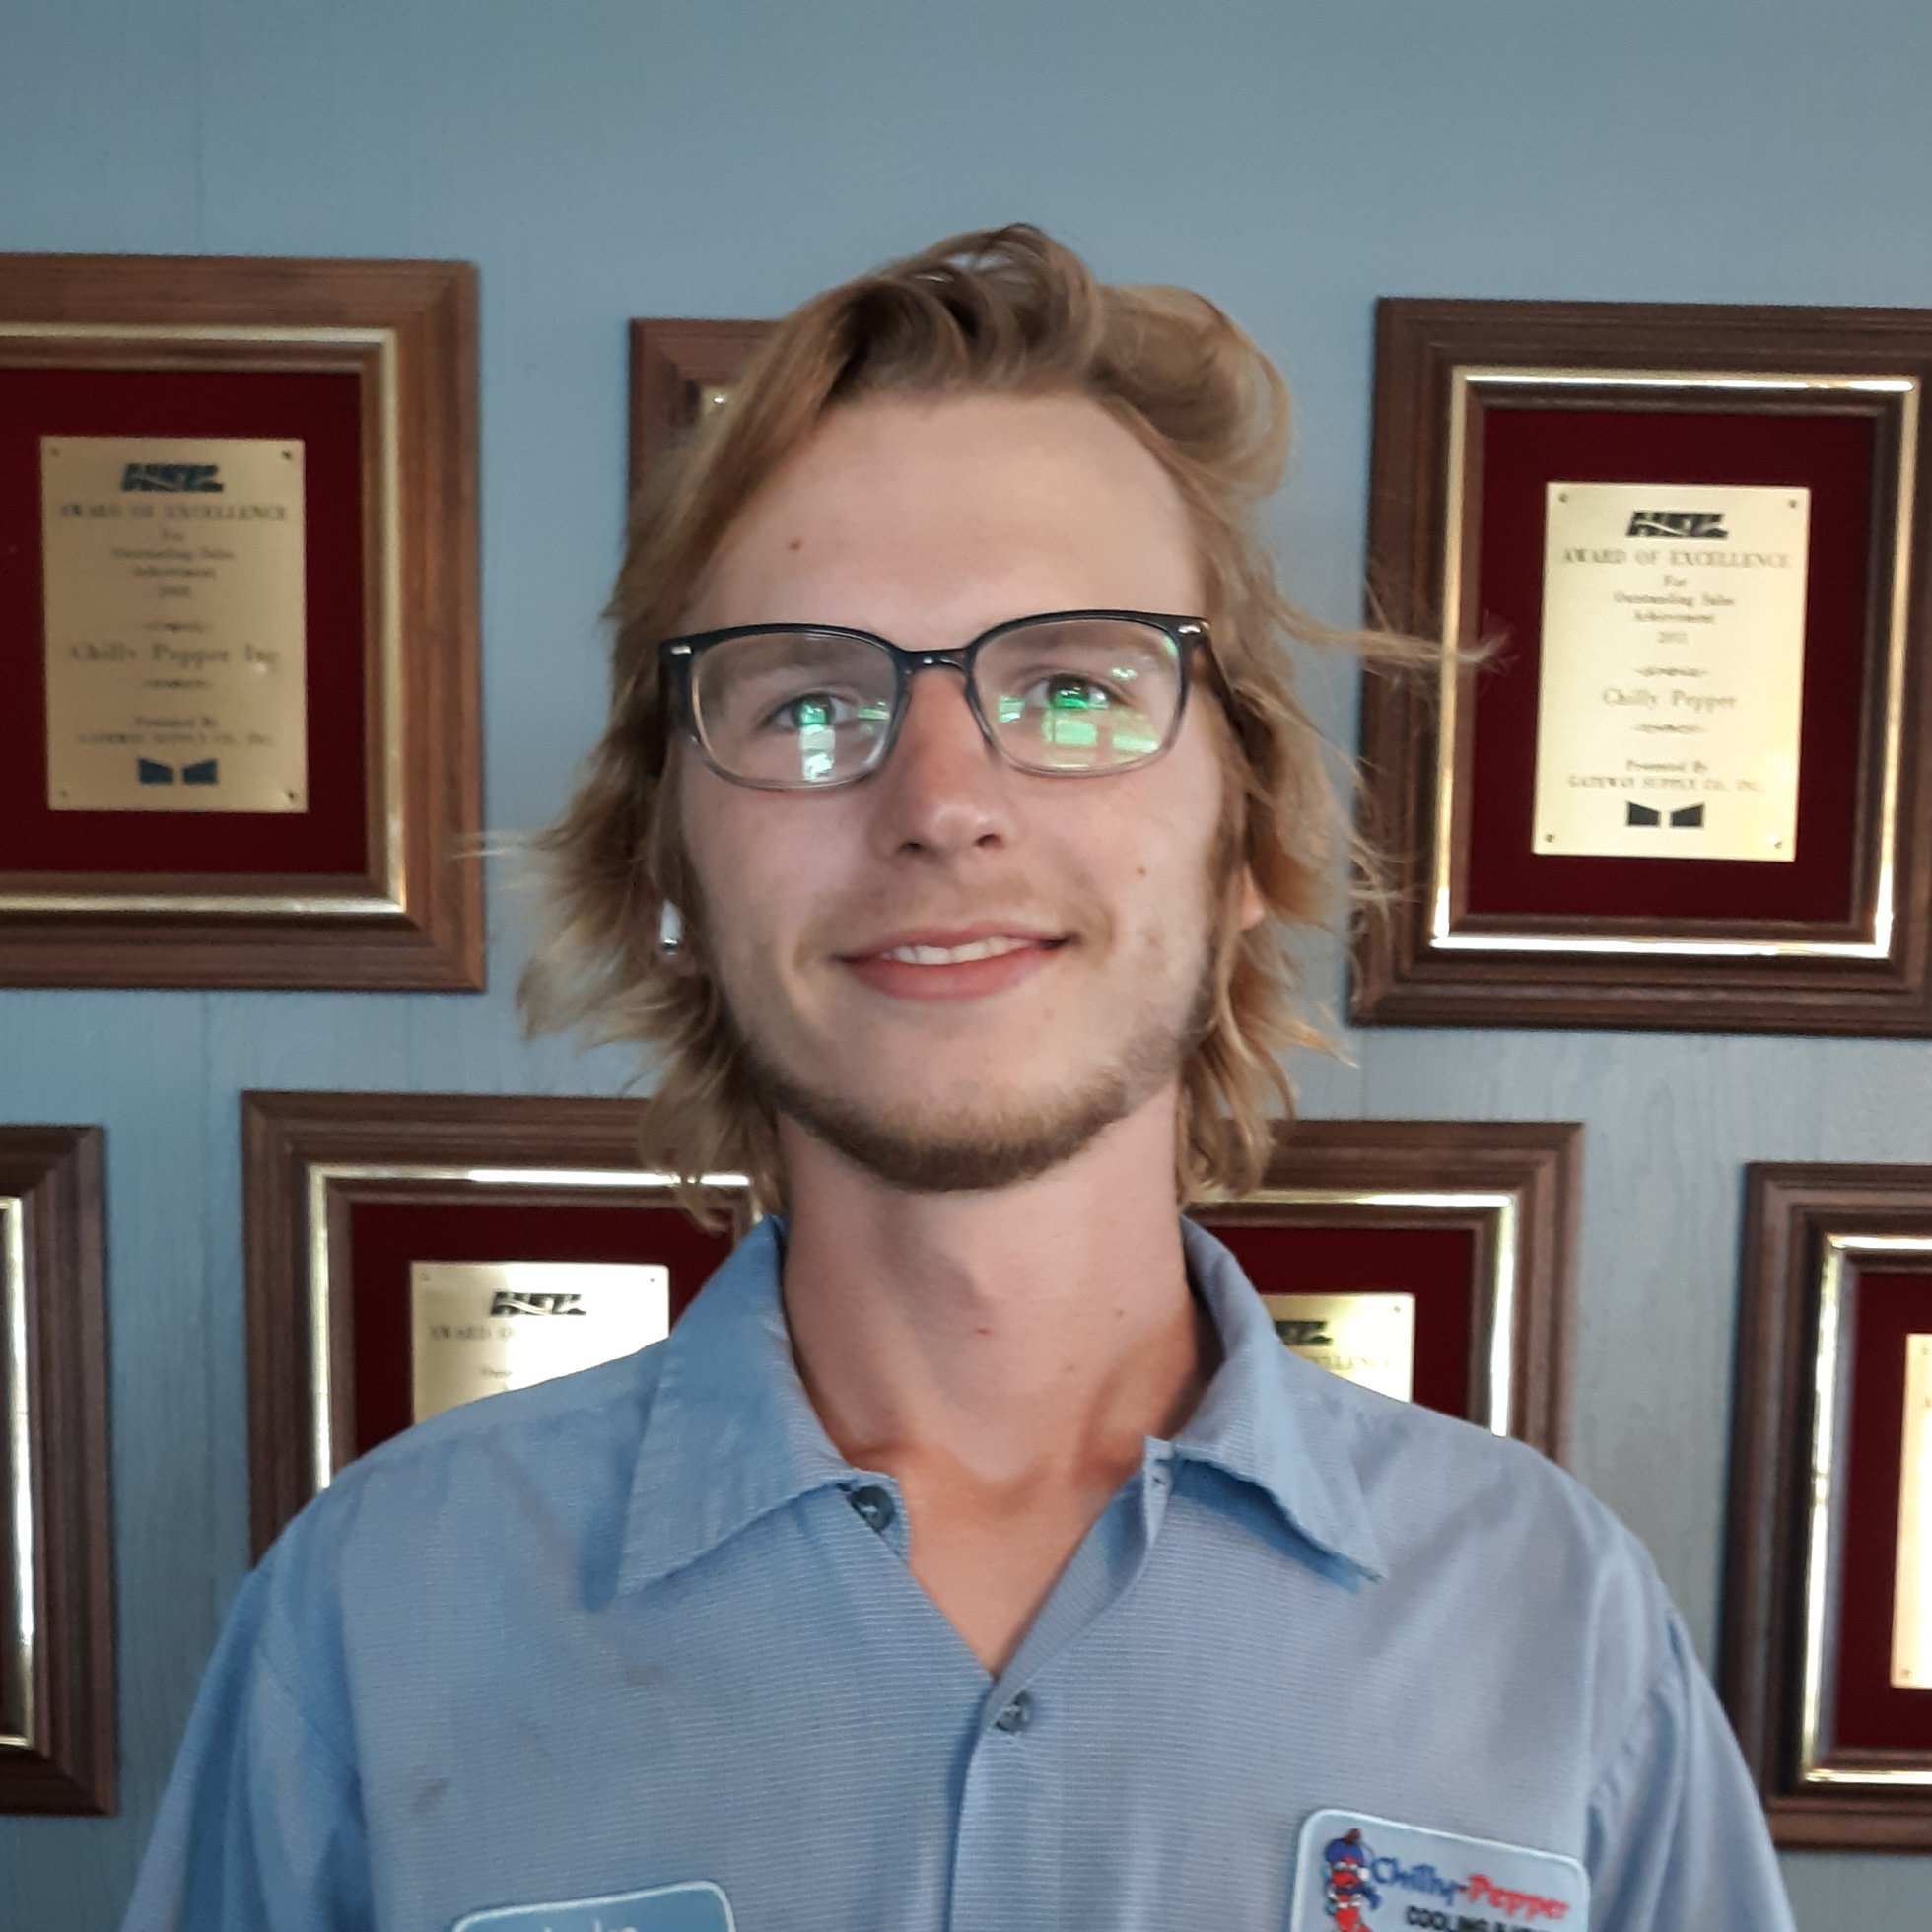 Luke Avant - HVAC TECHNICIAN APPRENTICELuke has been employed with Chilly Pepper since January 2019. He is scheduled to enroll at Horry Georgetown Technical College to complete the HVAC Technician Certification Program.He has hands on experience assisting with new system installation, preventative maintenance and repairs on various types of systems to ensure outstanding operation and performance.